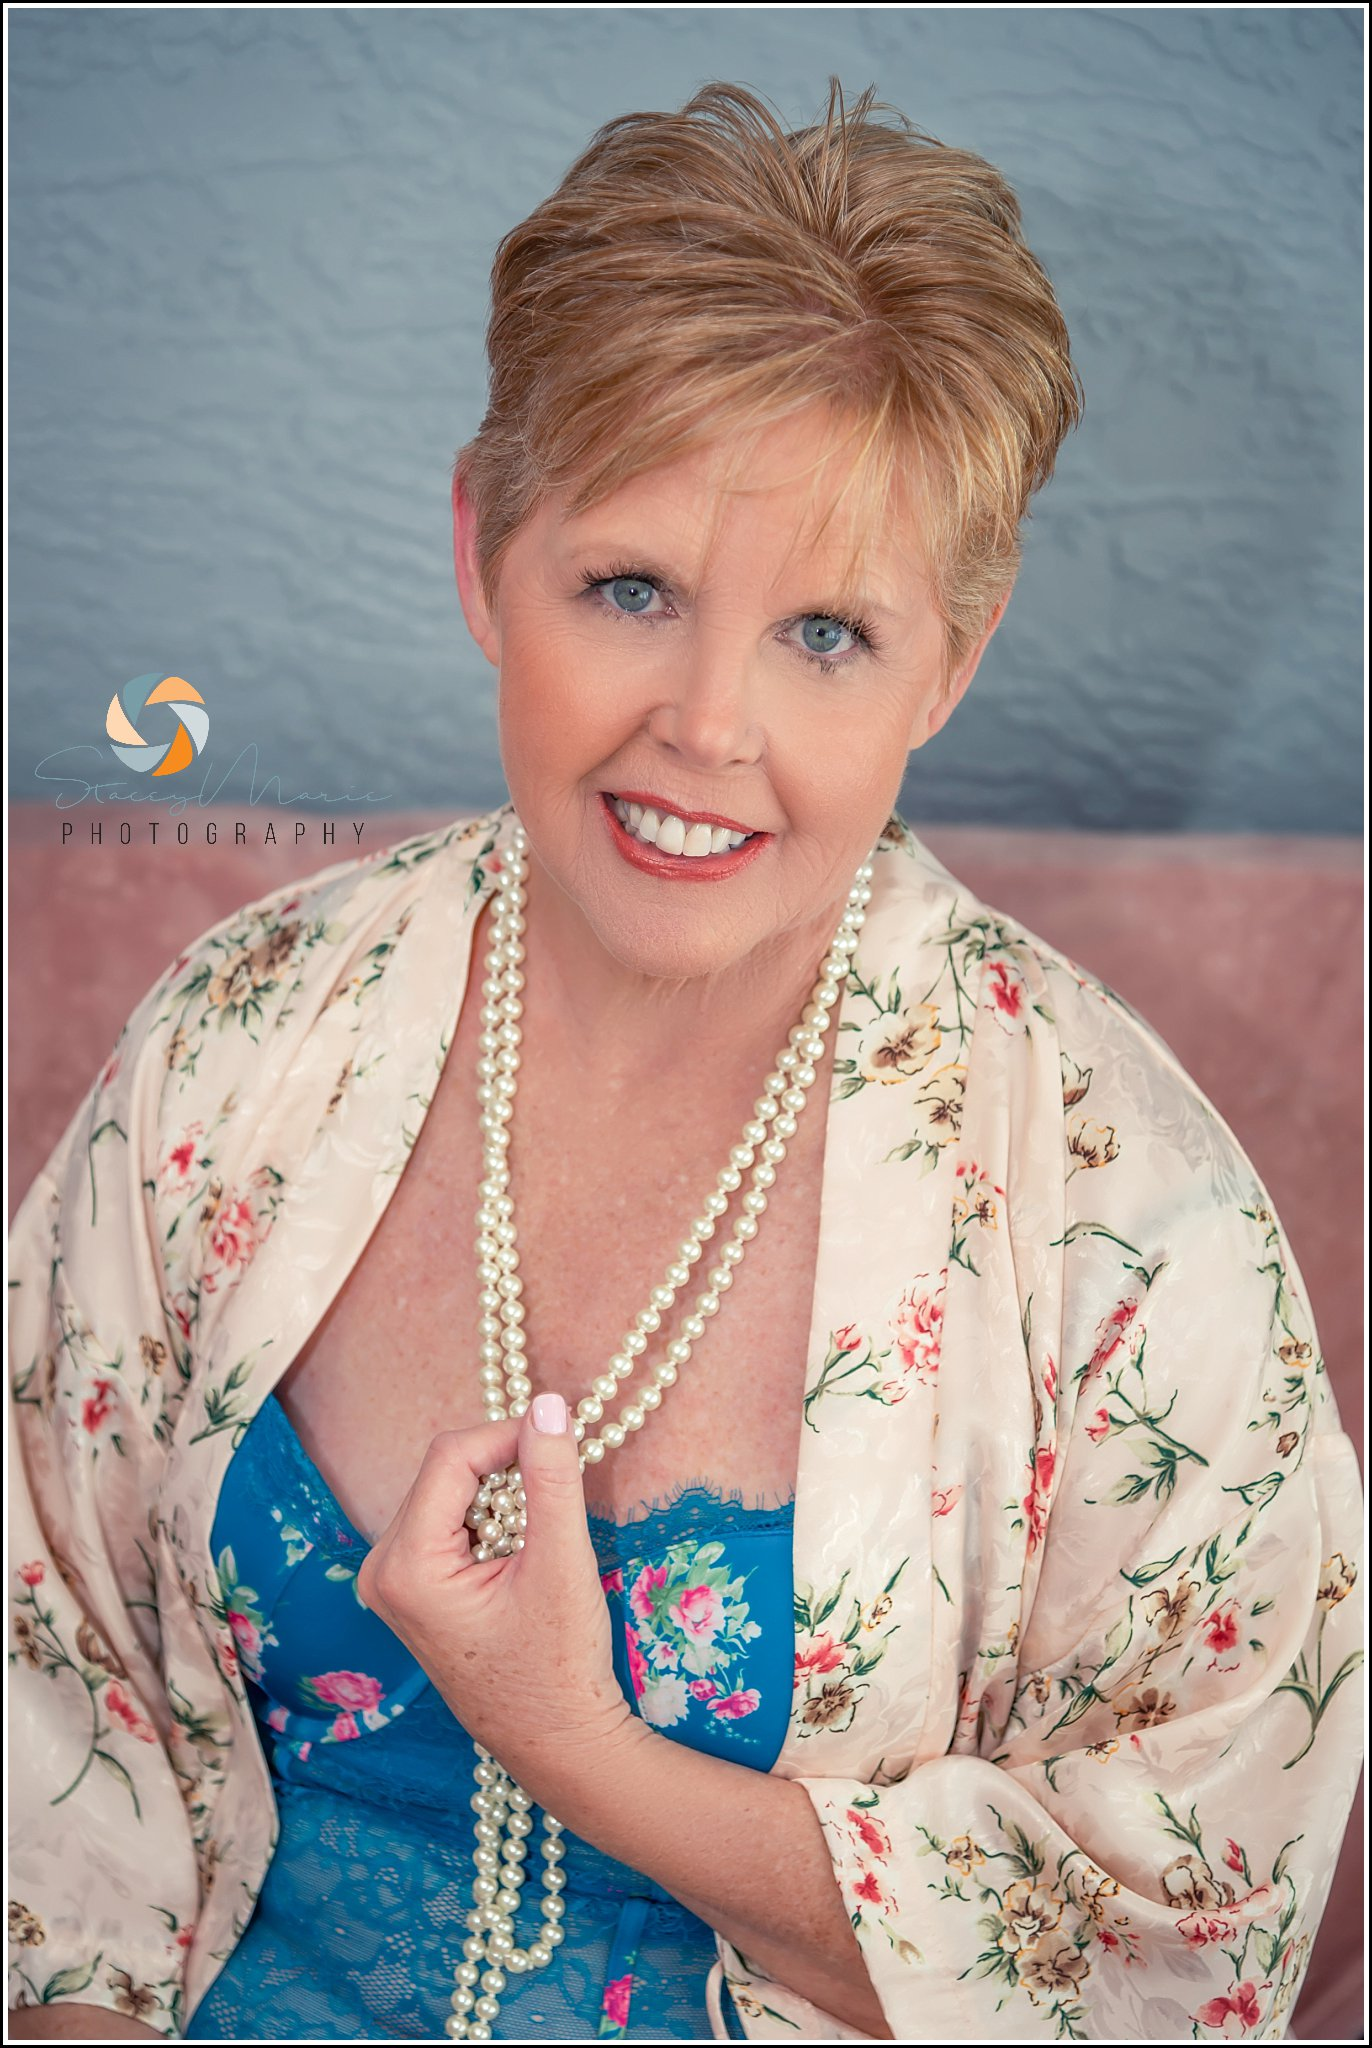 An older woman poses in lingerie and pearls for her boudoir sesision.